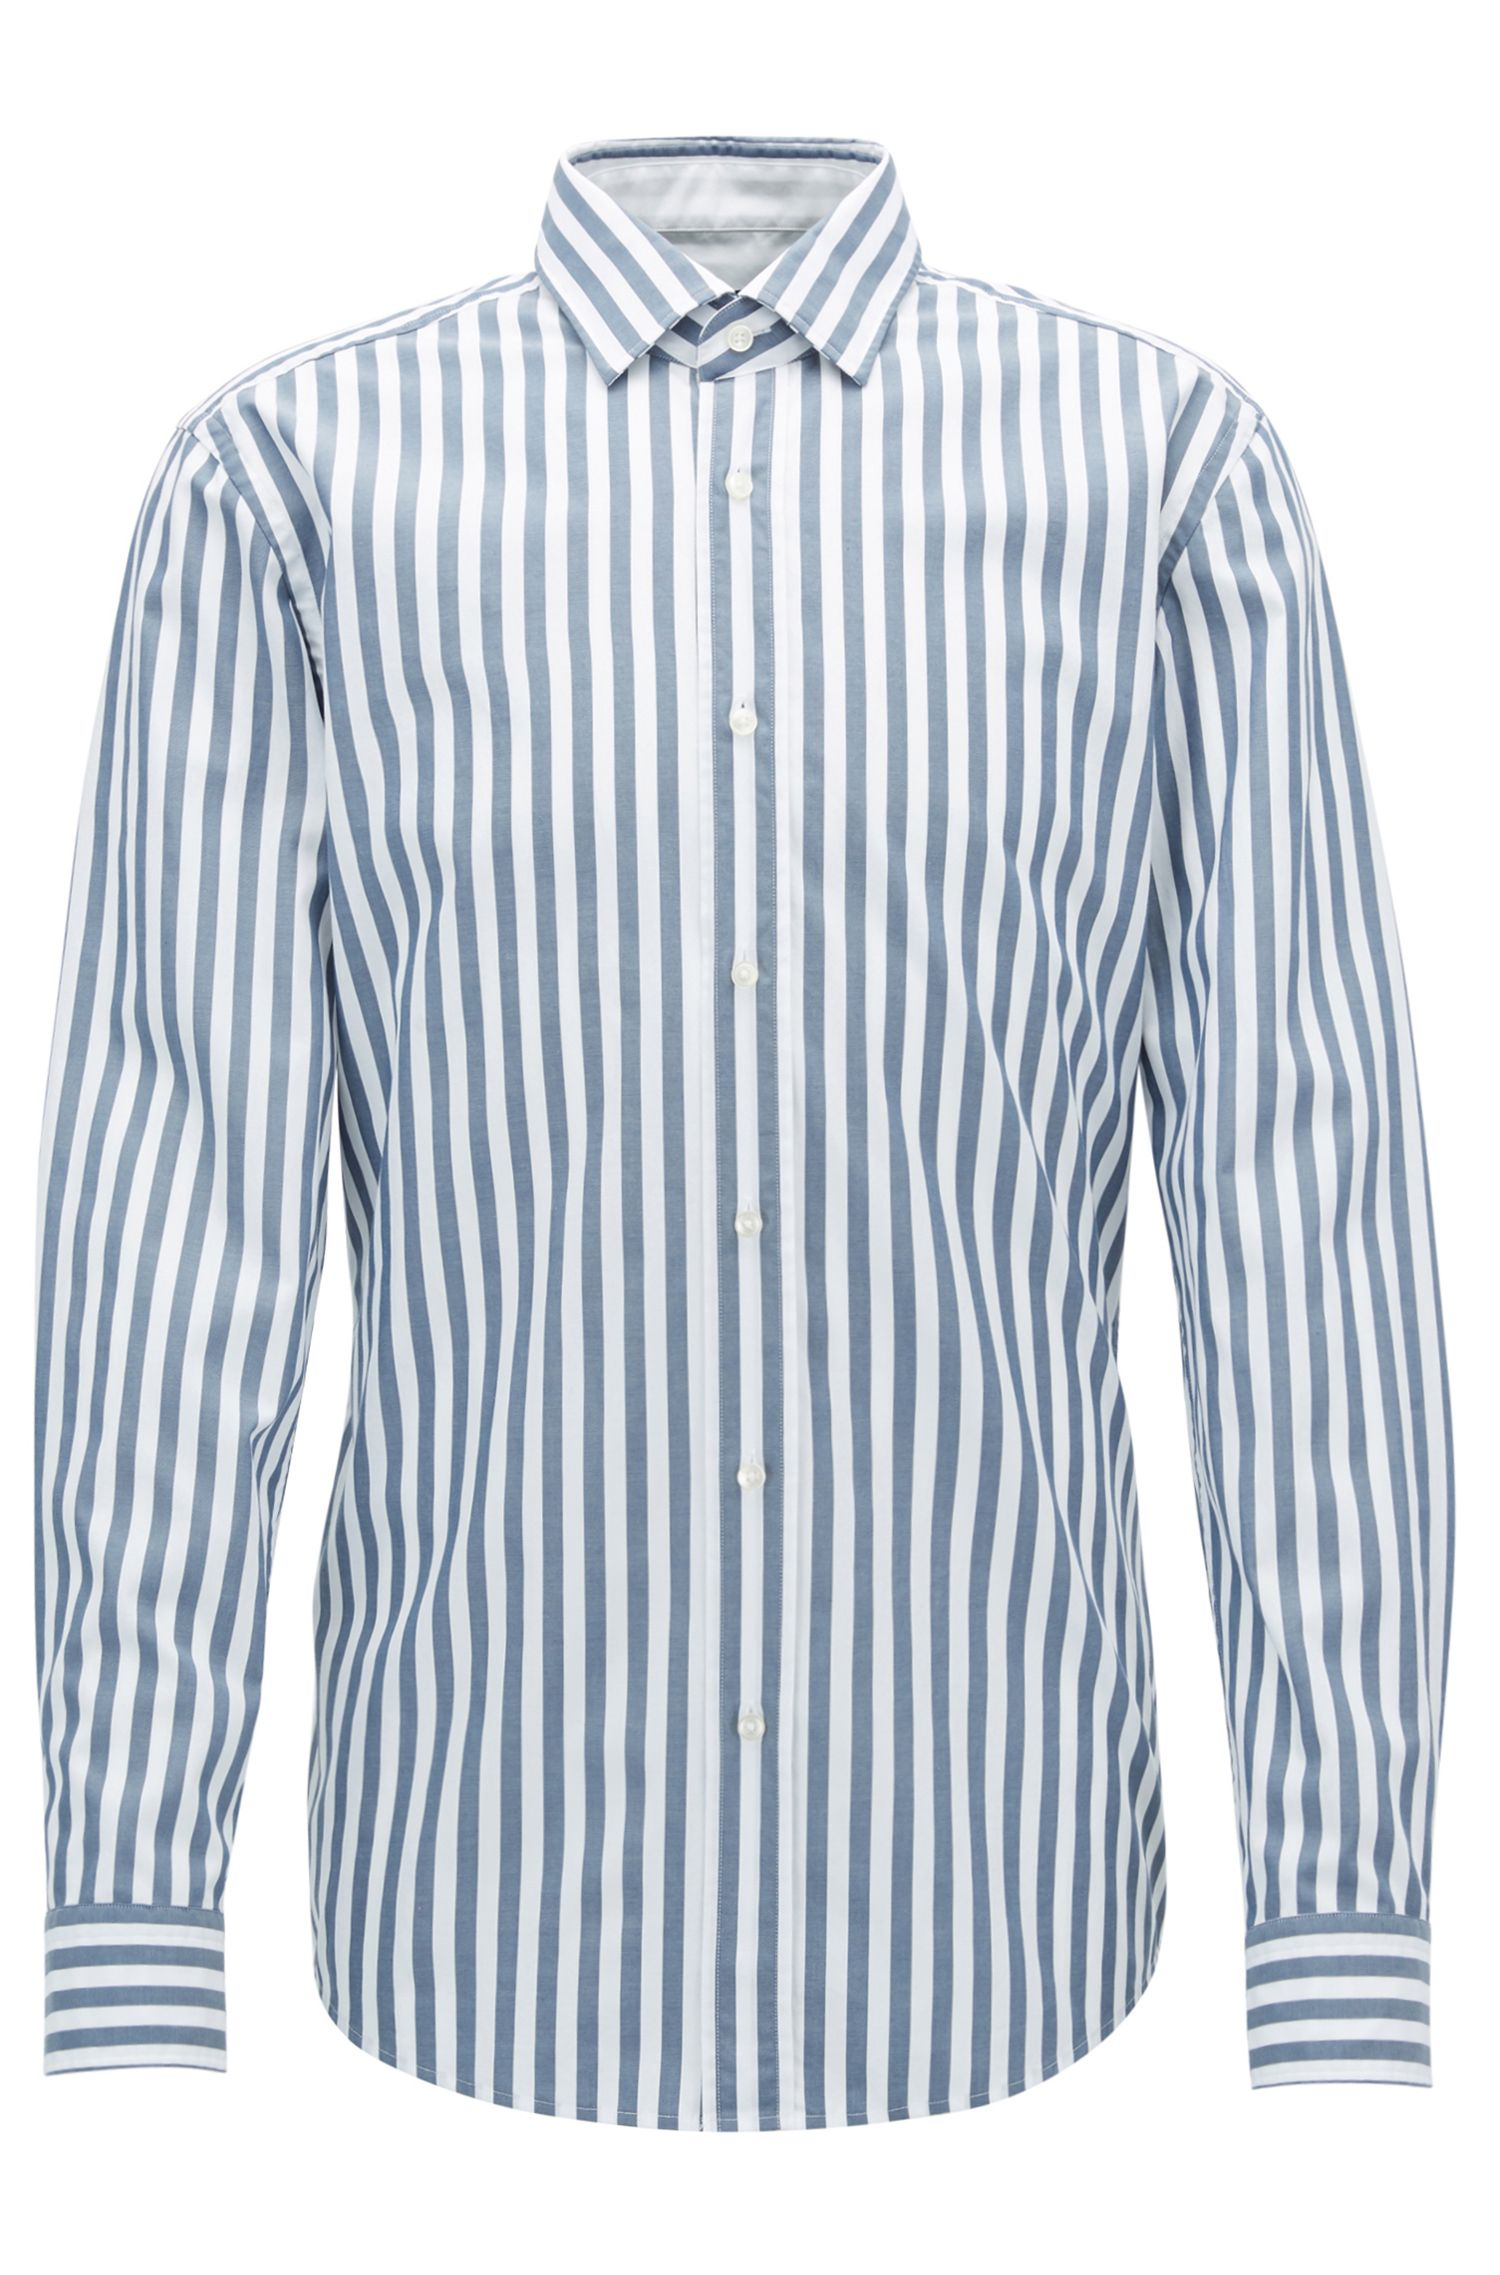 Slim-fit striped shirt in washed cotton